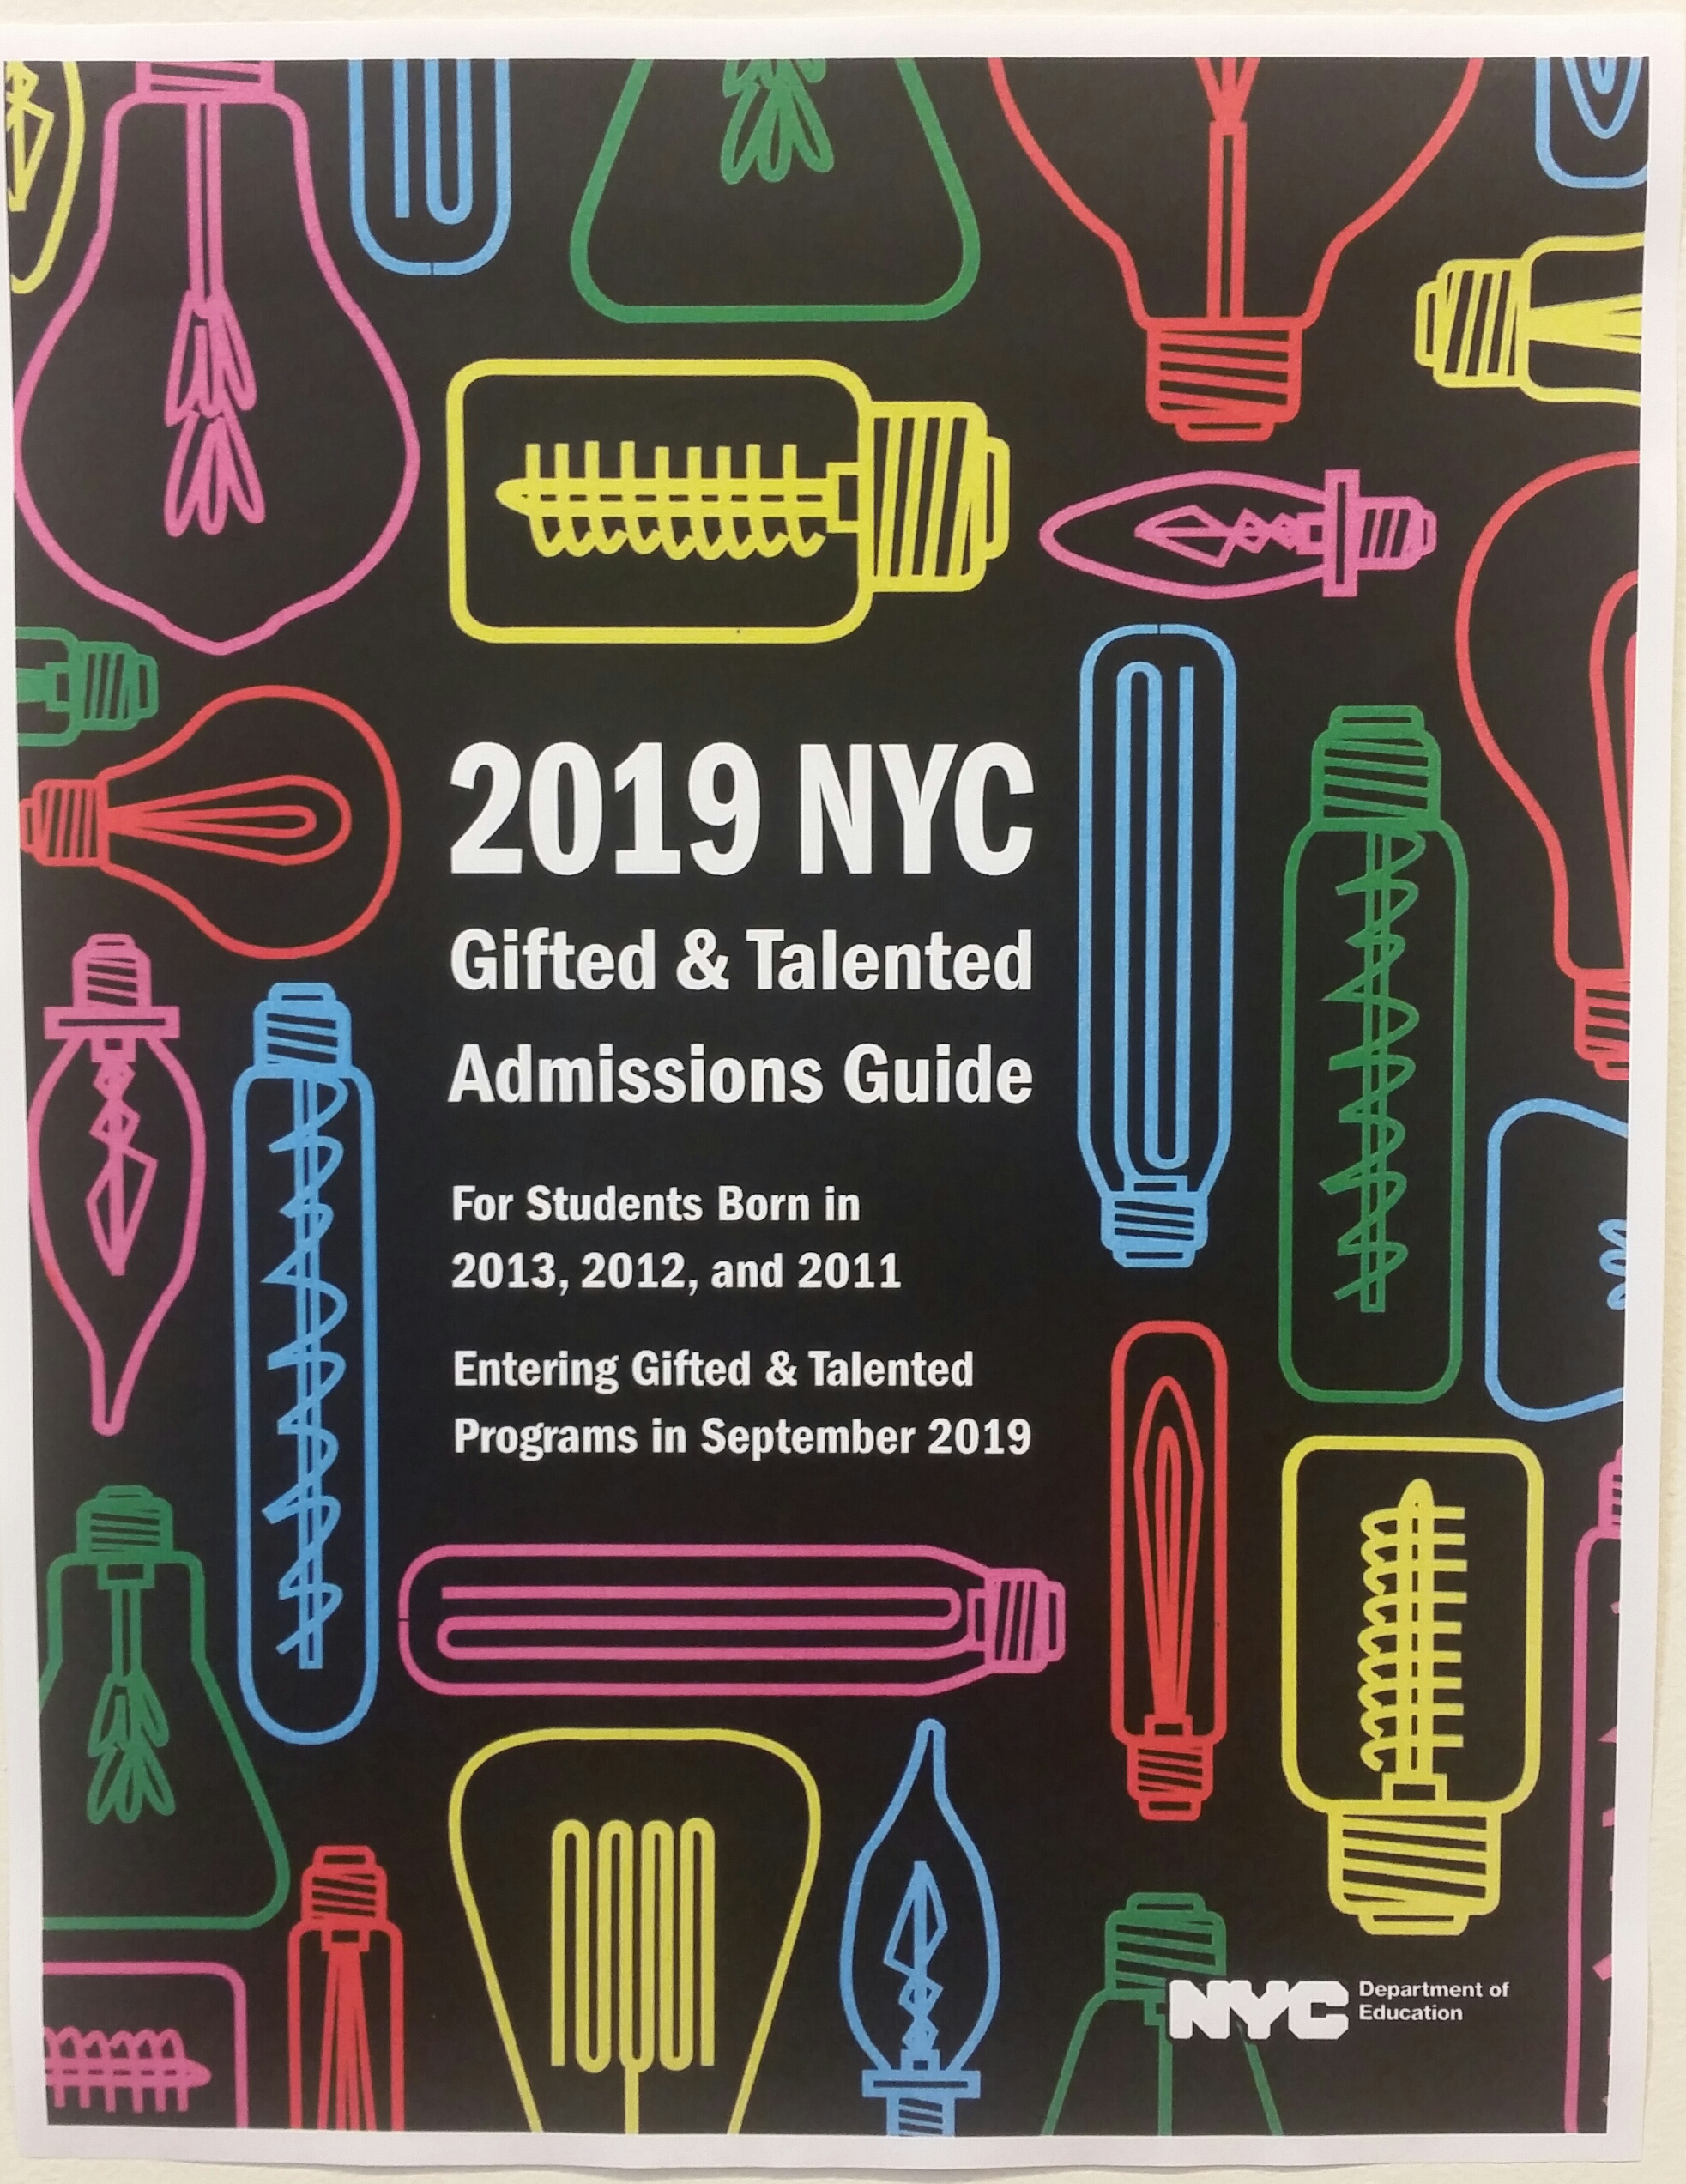 2019 NYC Gifted & Talented Admissions | P.S.56Q Harry Eichler Elementary School